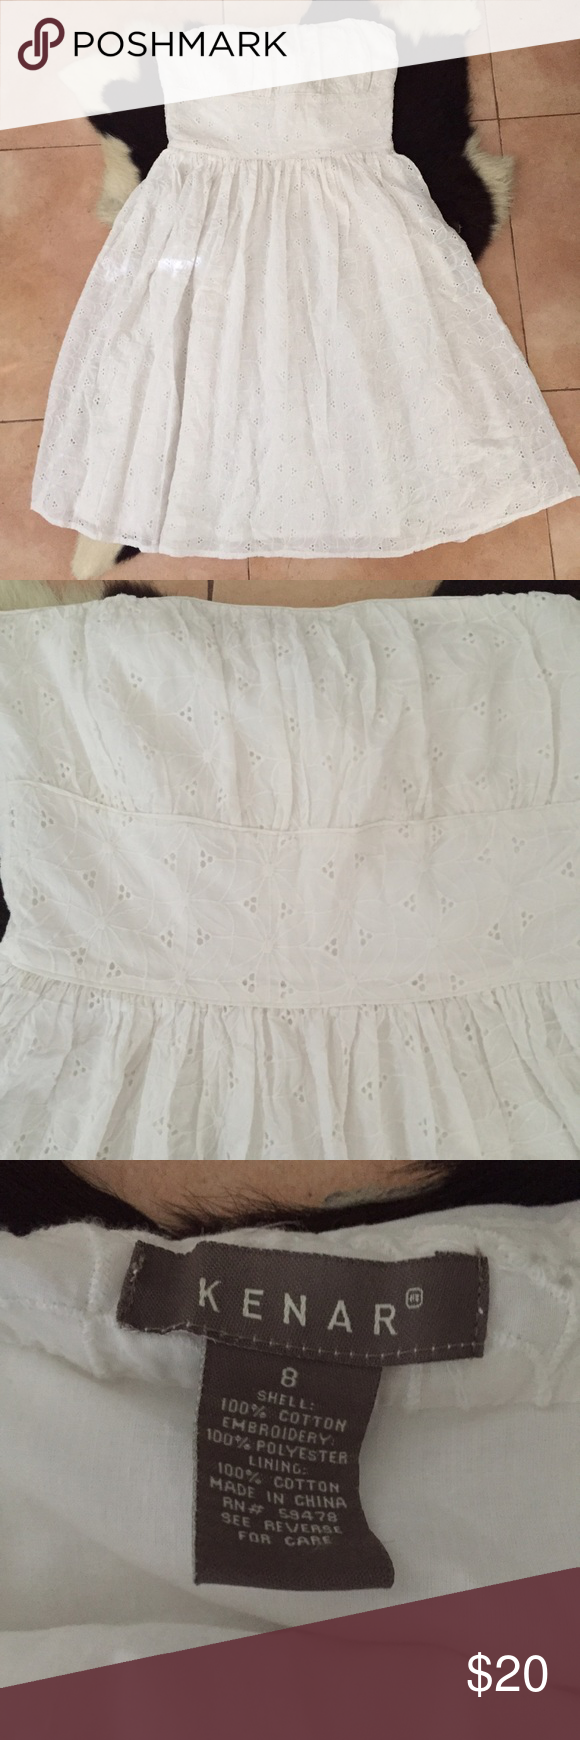 🎈Flash Sale🎈Kenar strapless dress 🎈Flash Sale🎈This sale will only last 24 hours. After that, items will go back to regular price. ($15) Beautiful Kenar white strapless dress. Perfect for summer days. Ask any question. Bundle 2 or more items and save 15% Reasonable offers are welcome! Kenar Dresses Strapless